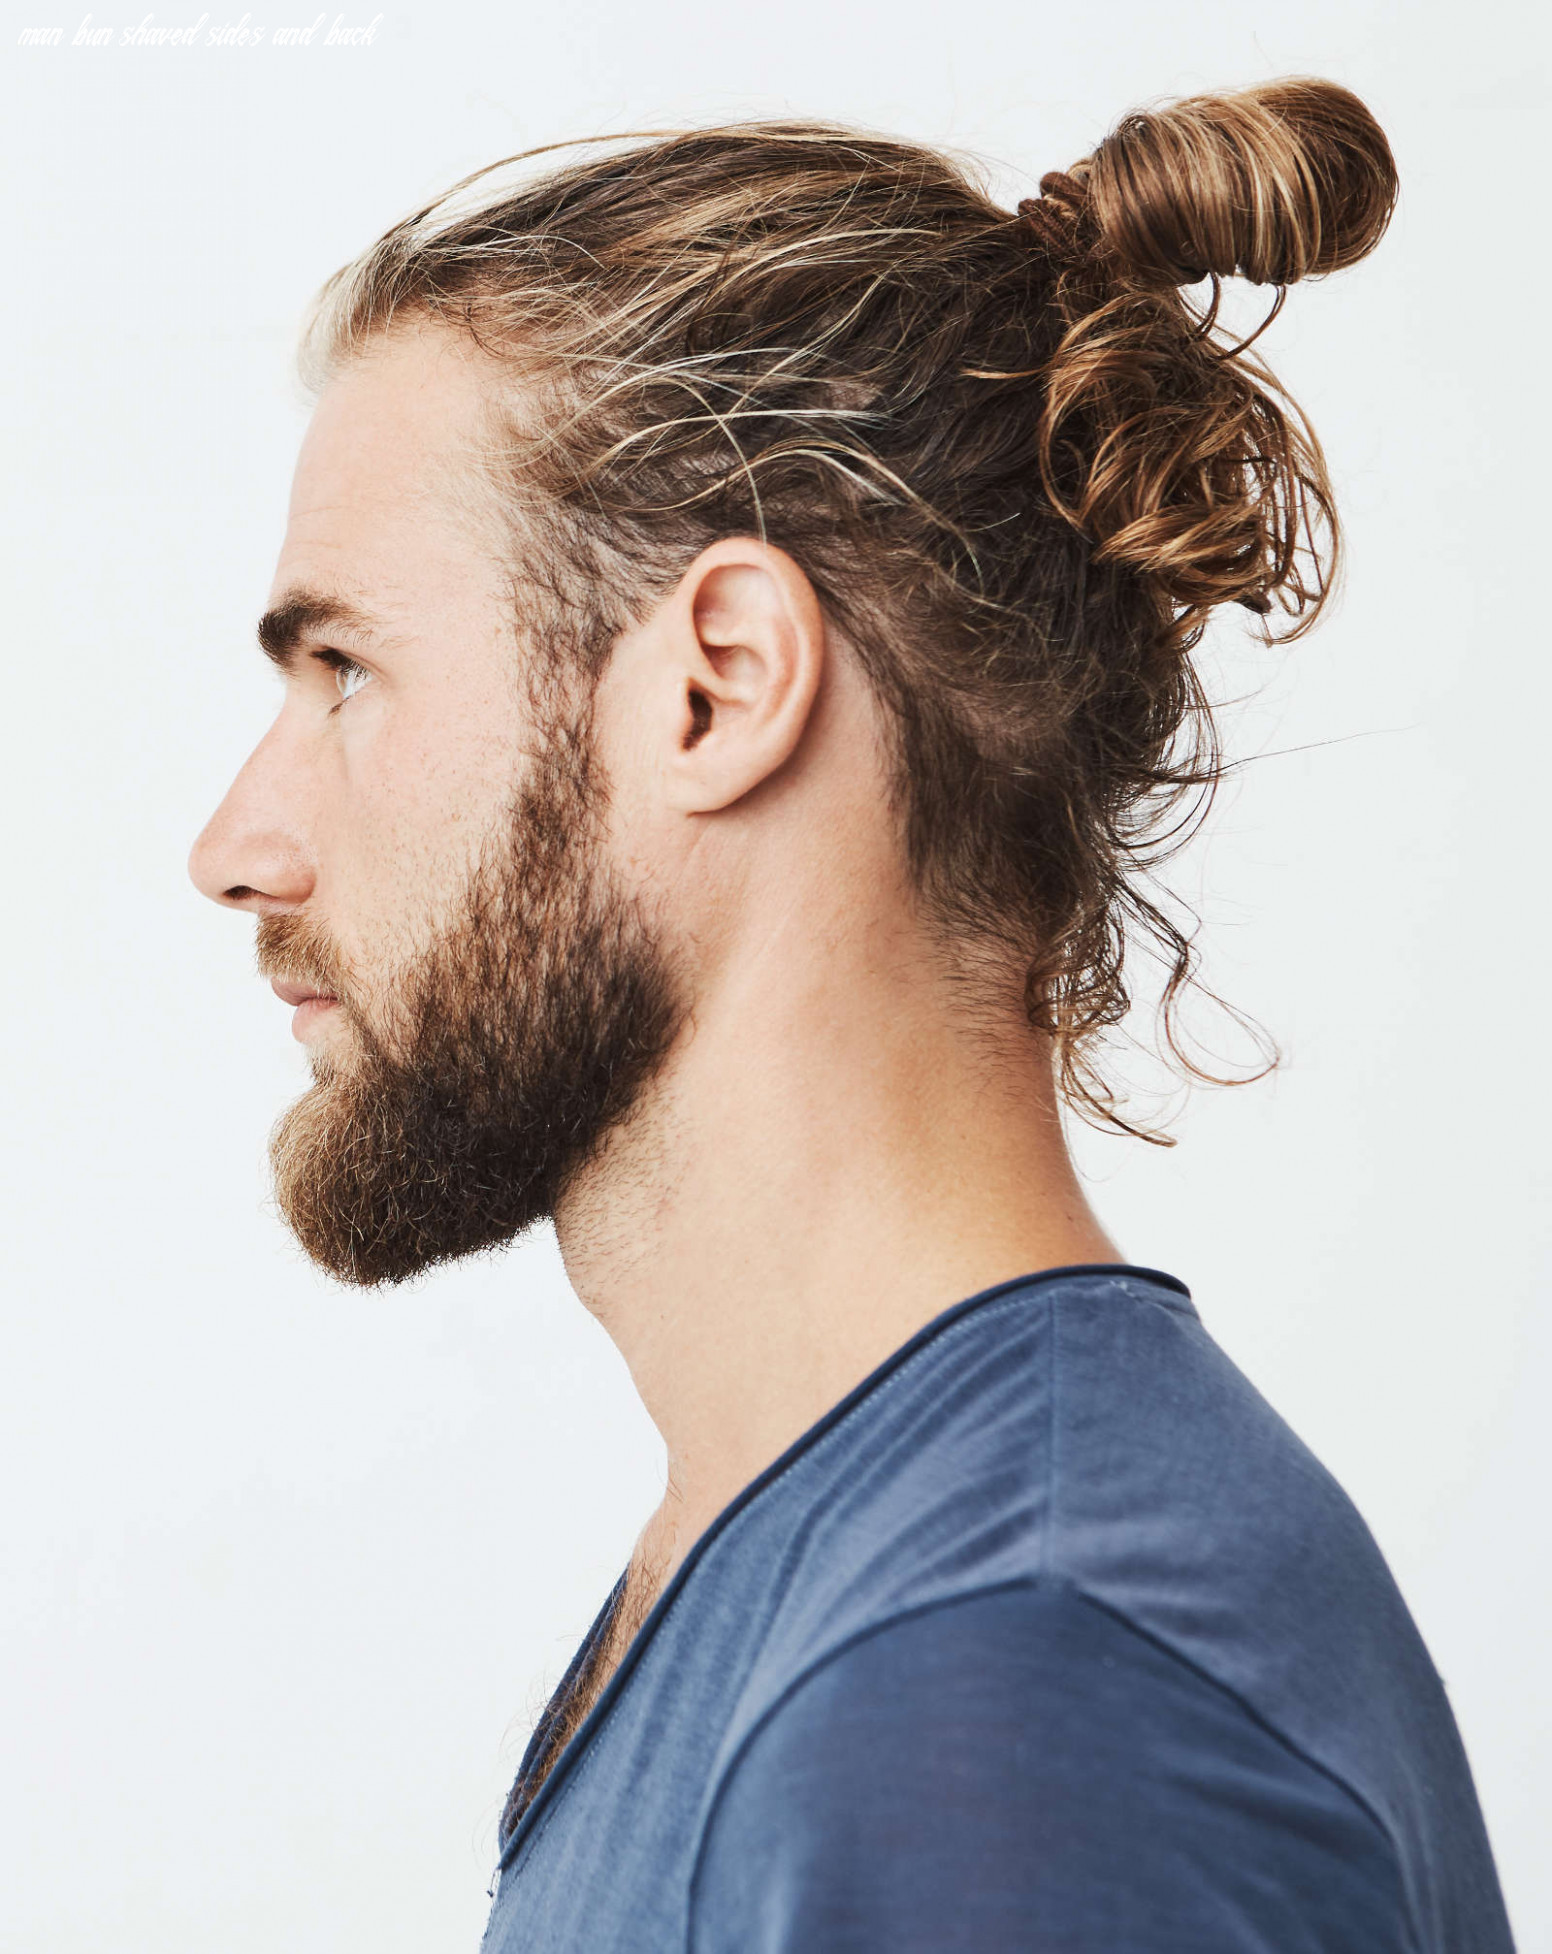 12 types of man bun hairstyles | gallery how to man bun shaved sides and back